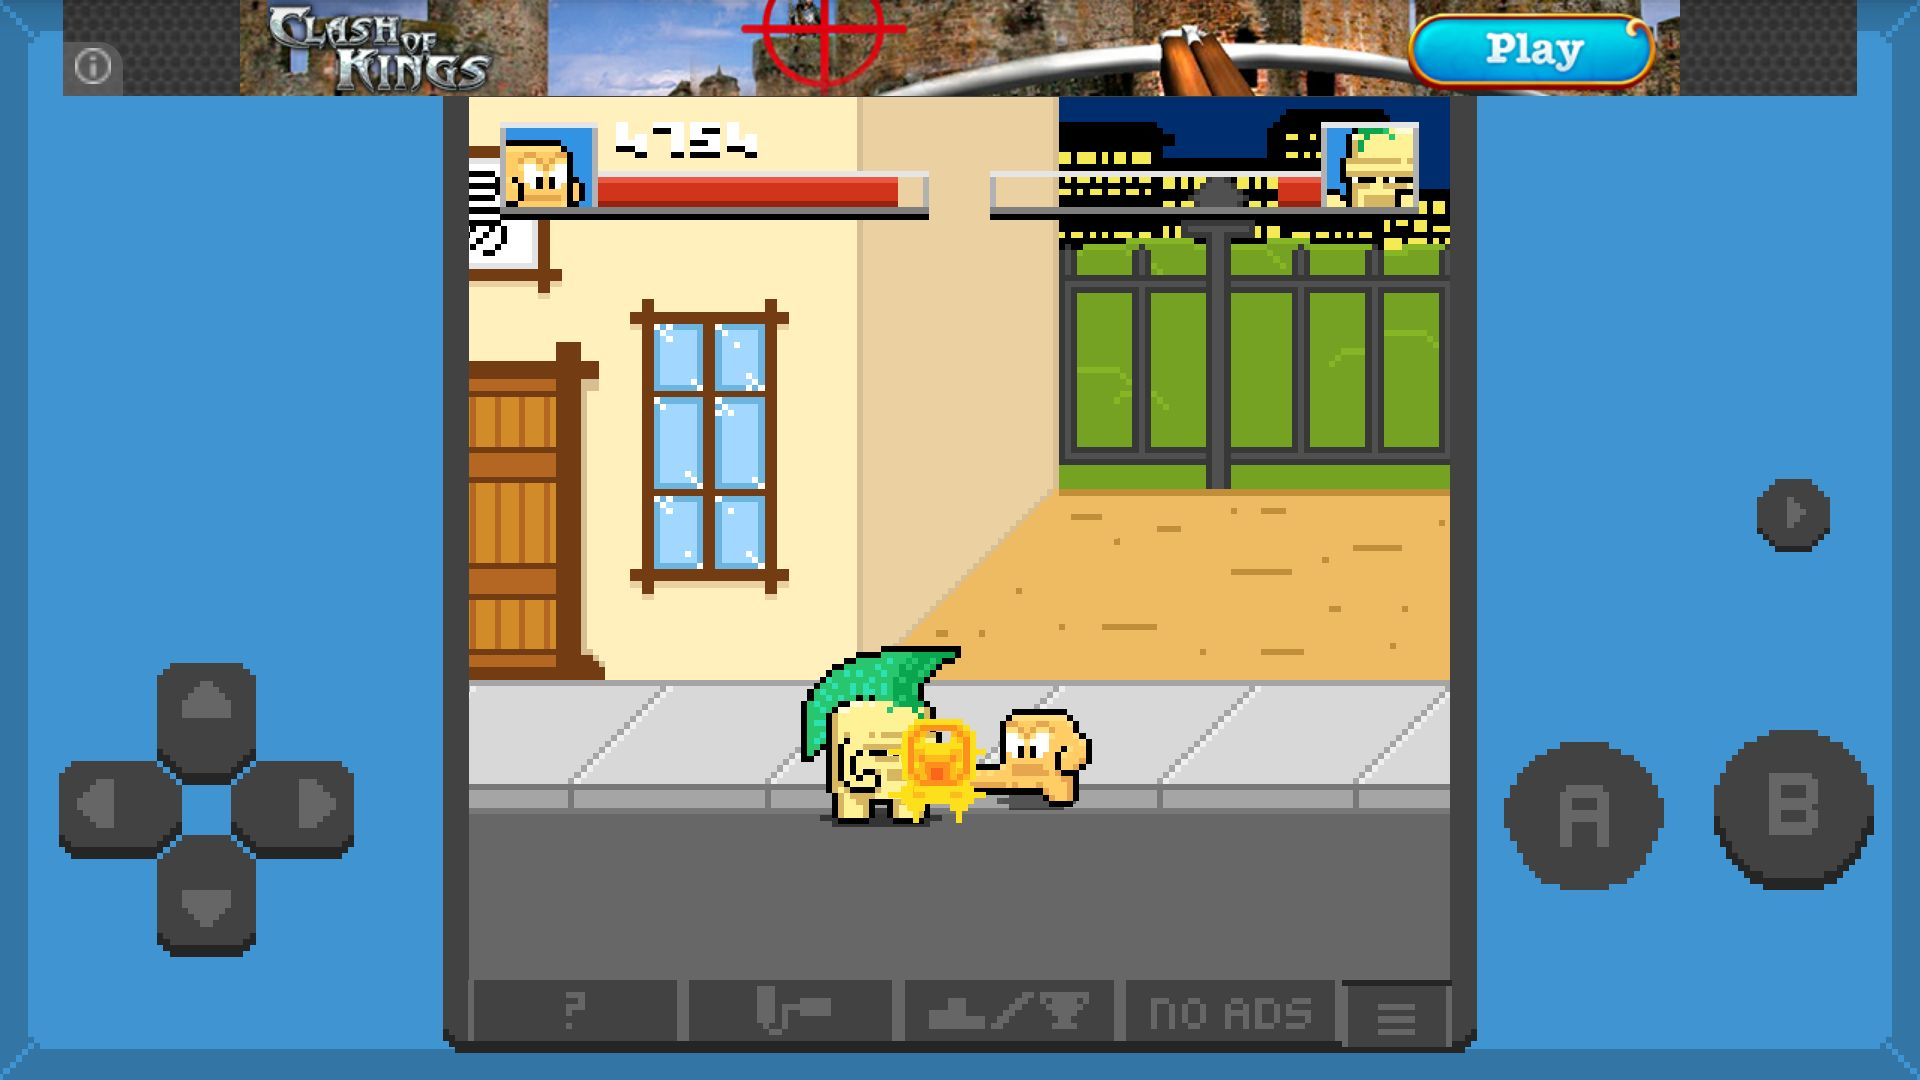 Squareboy vs Bullies androidアプリスクリーンショット1